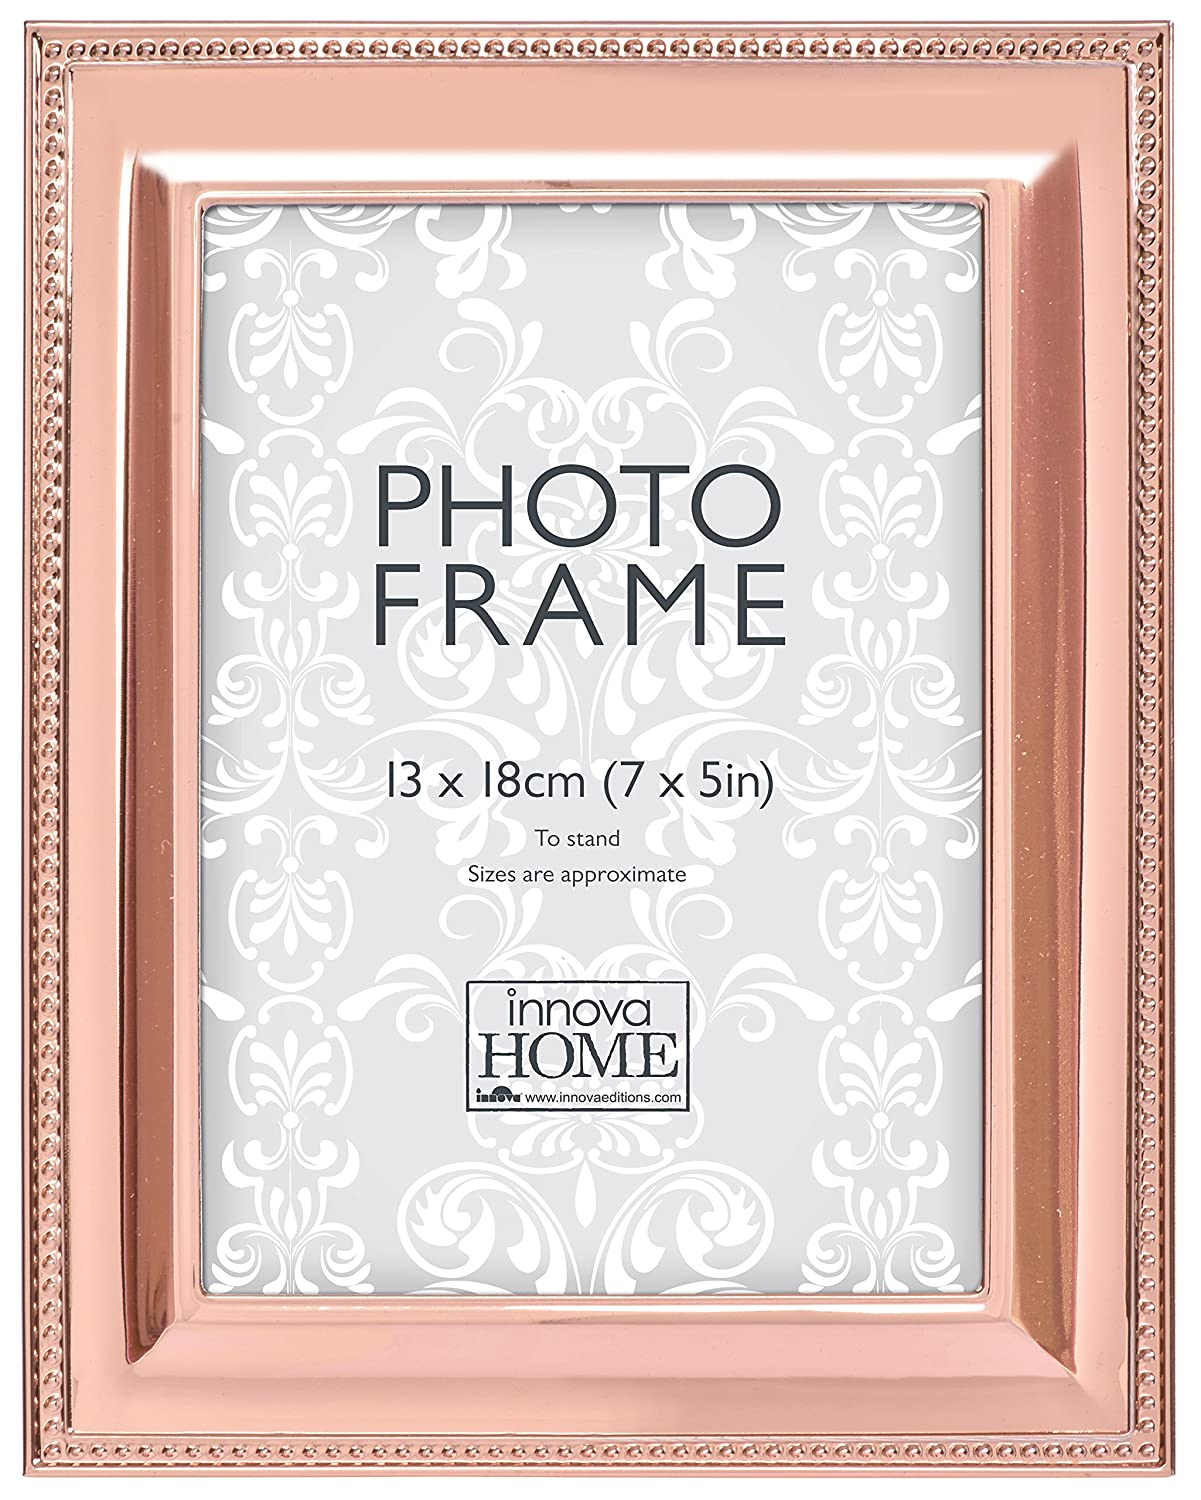 e8a02ab57cf Innova Beautiful And Chic Photo Frame With Beading Pattern Around Edge